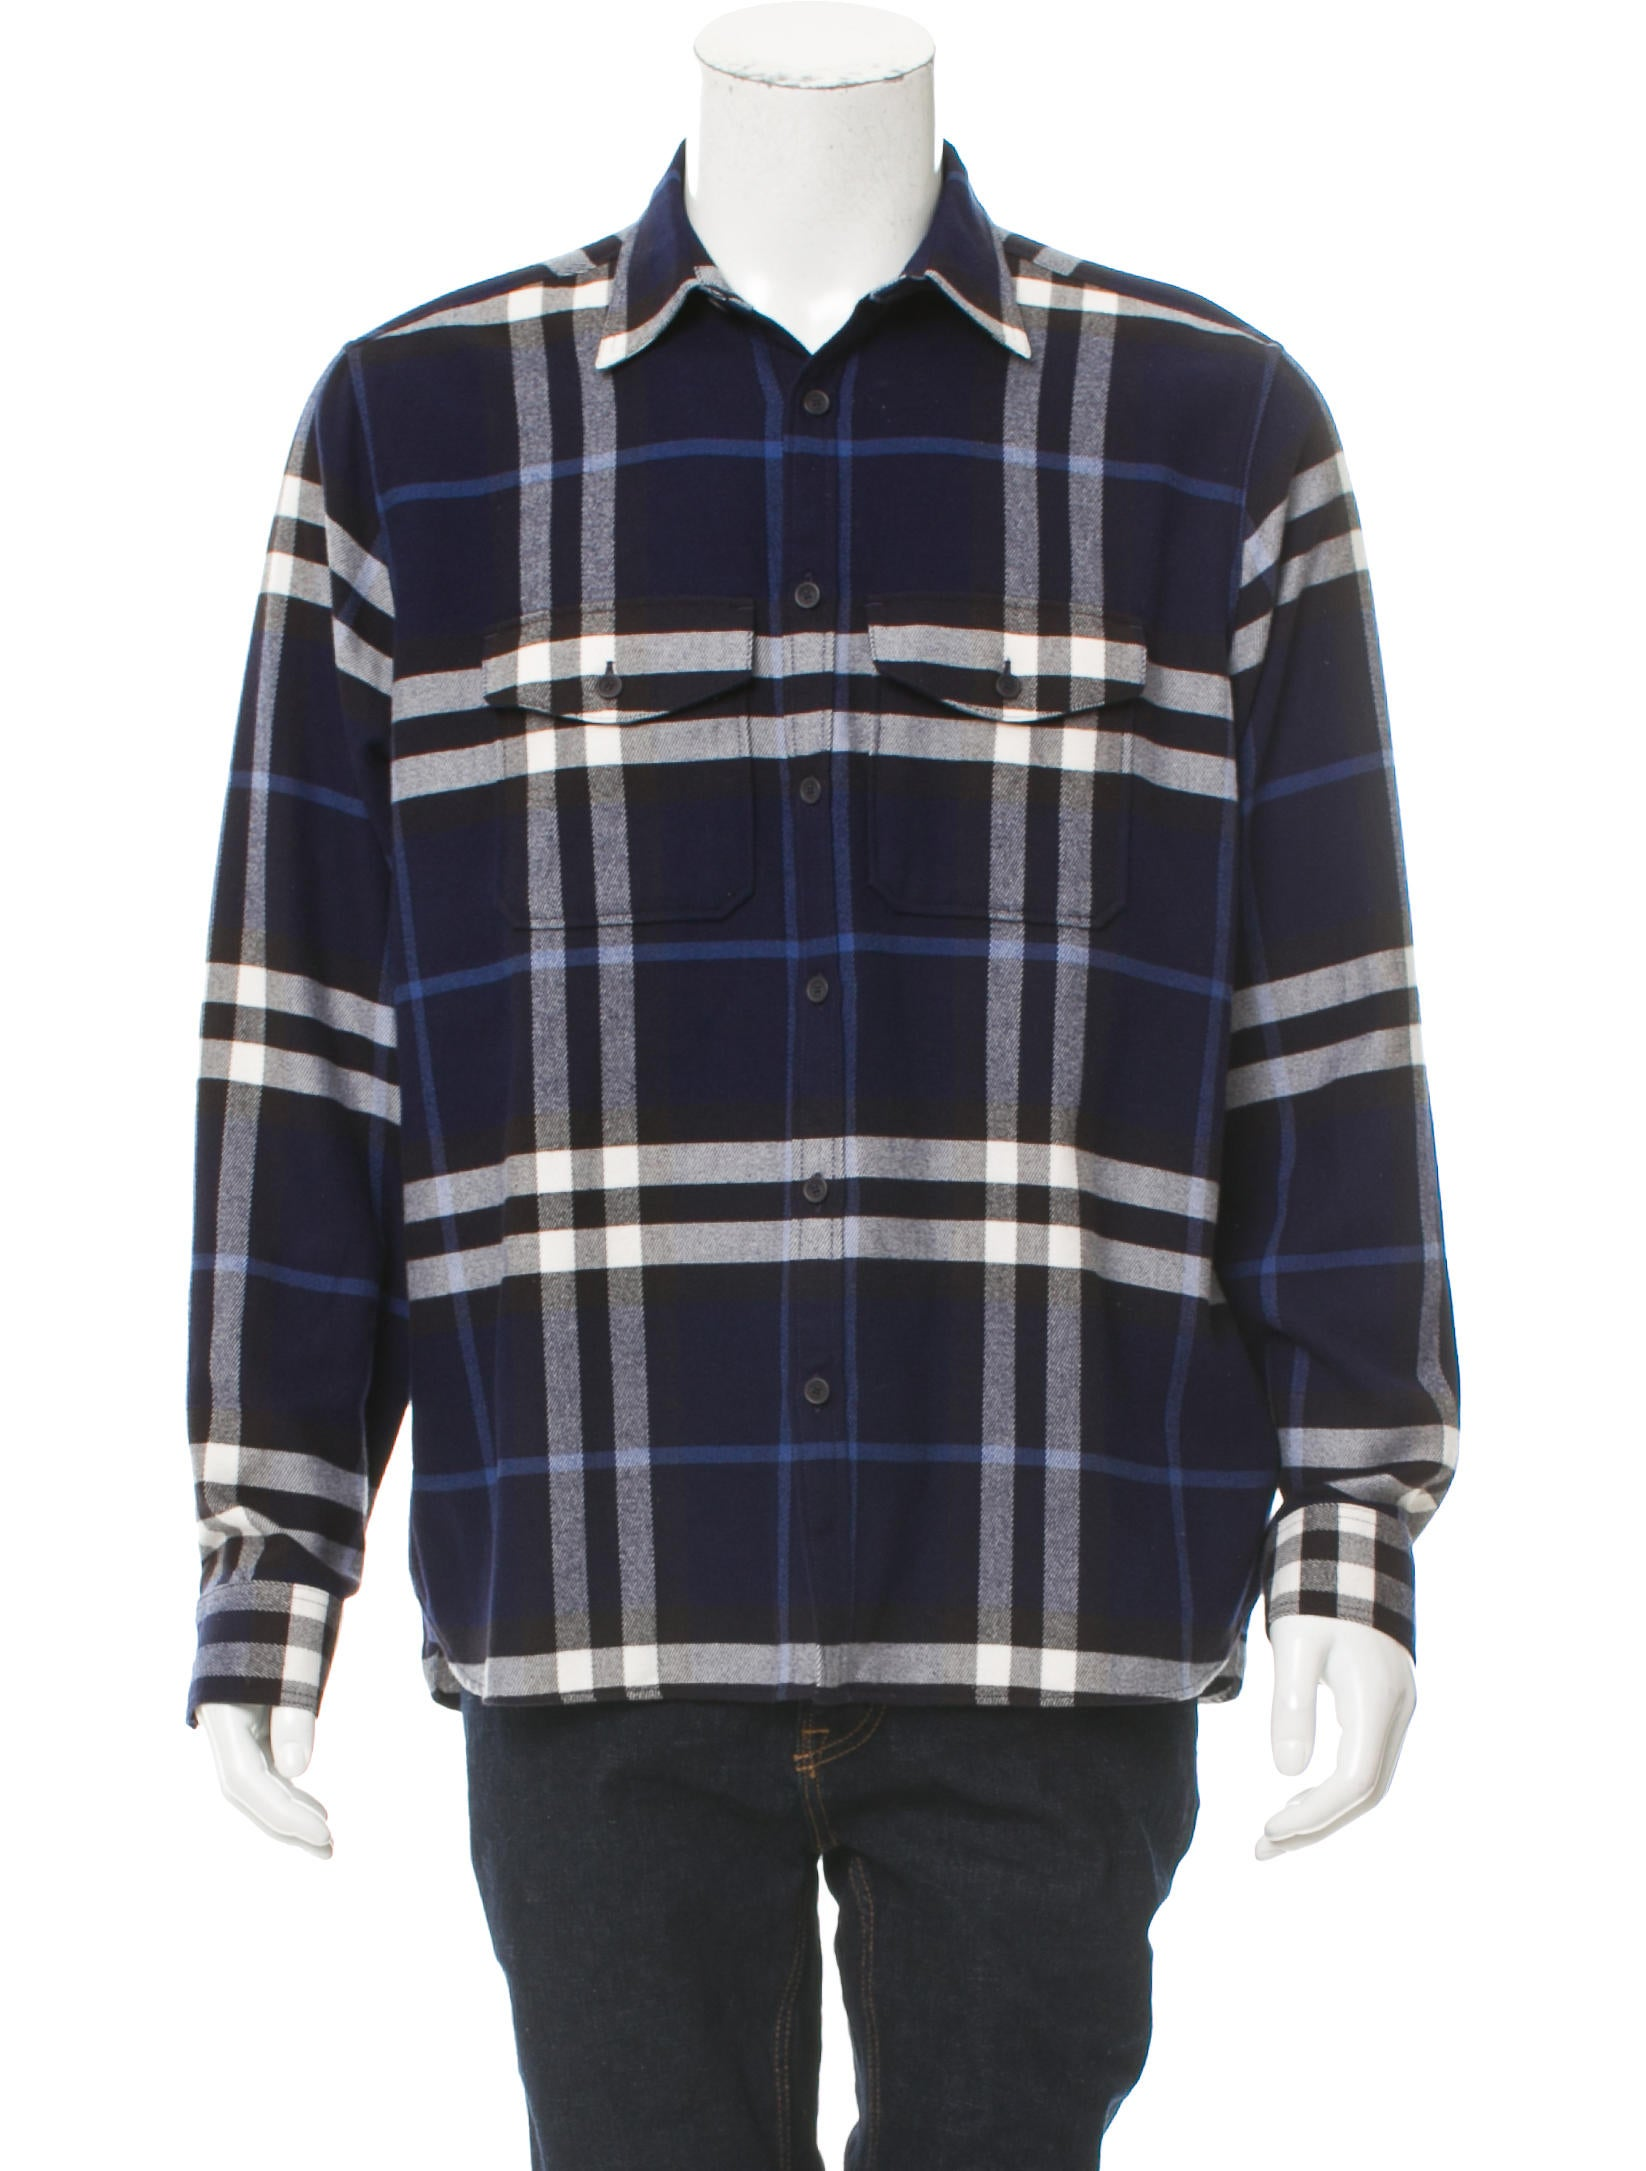 Mens Button Up Shirts. Shop Mens short sleeve button down and long sleeve button down from brands like Dravus, Empyre, RVCA, and Zine. Free shipping everyday. See Details. U.S. ONLY, EXCLUDING AK/HI. Store pickup is always free.